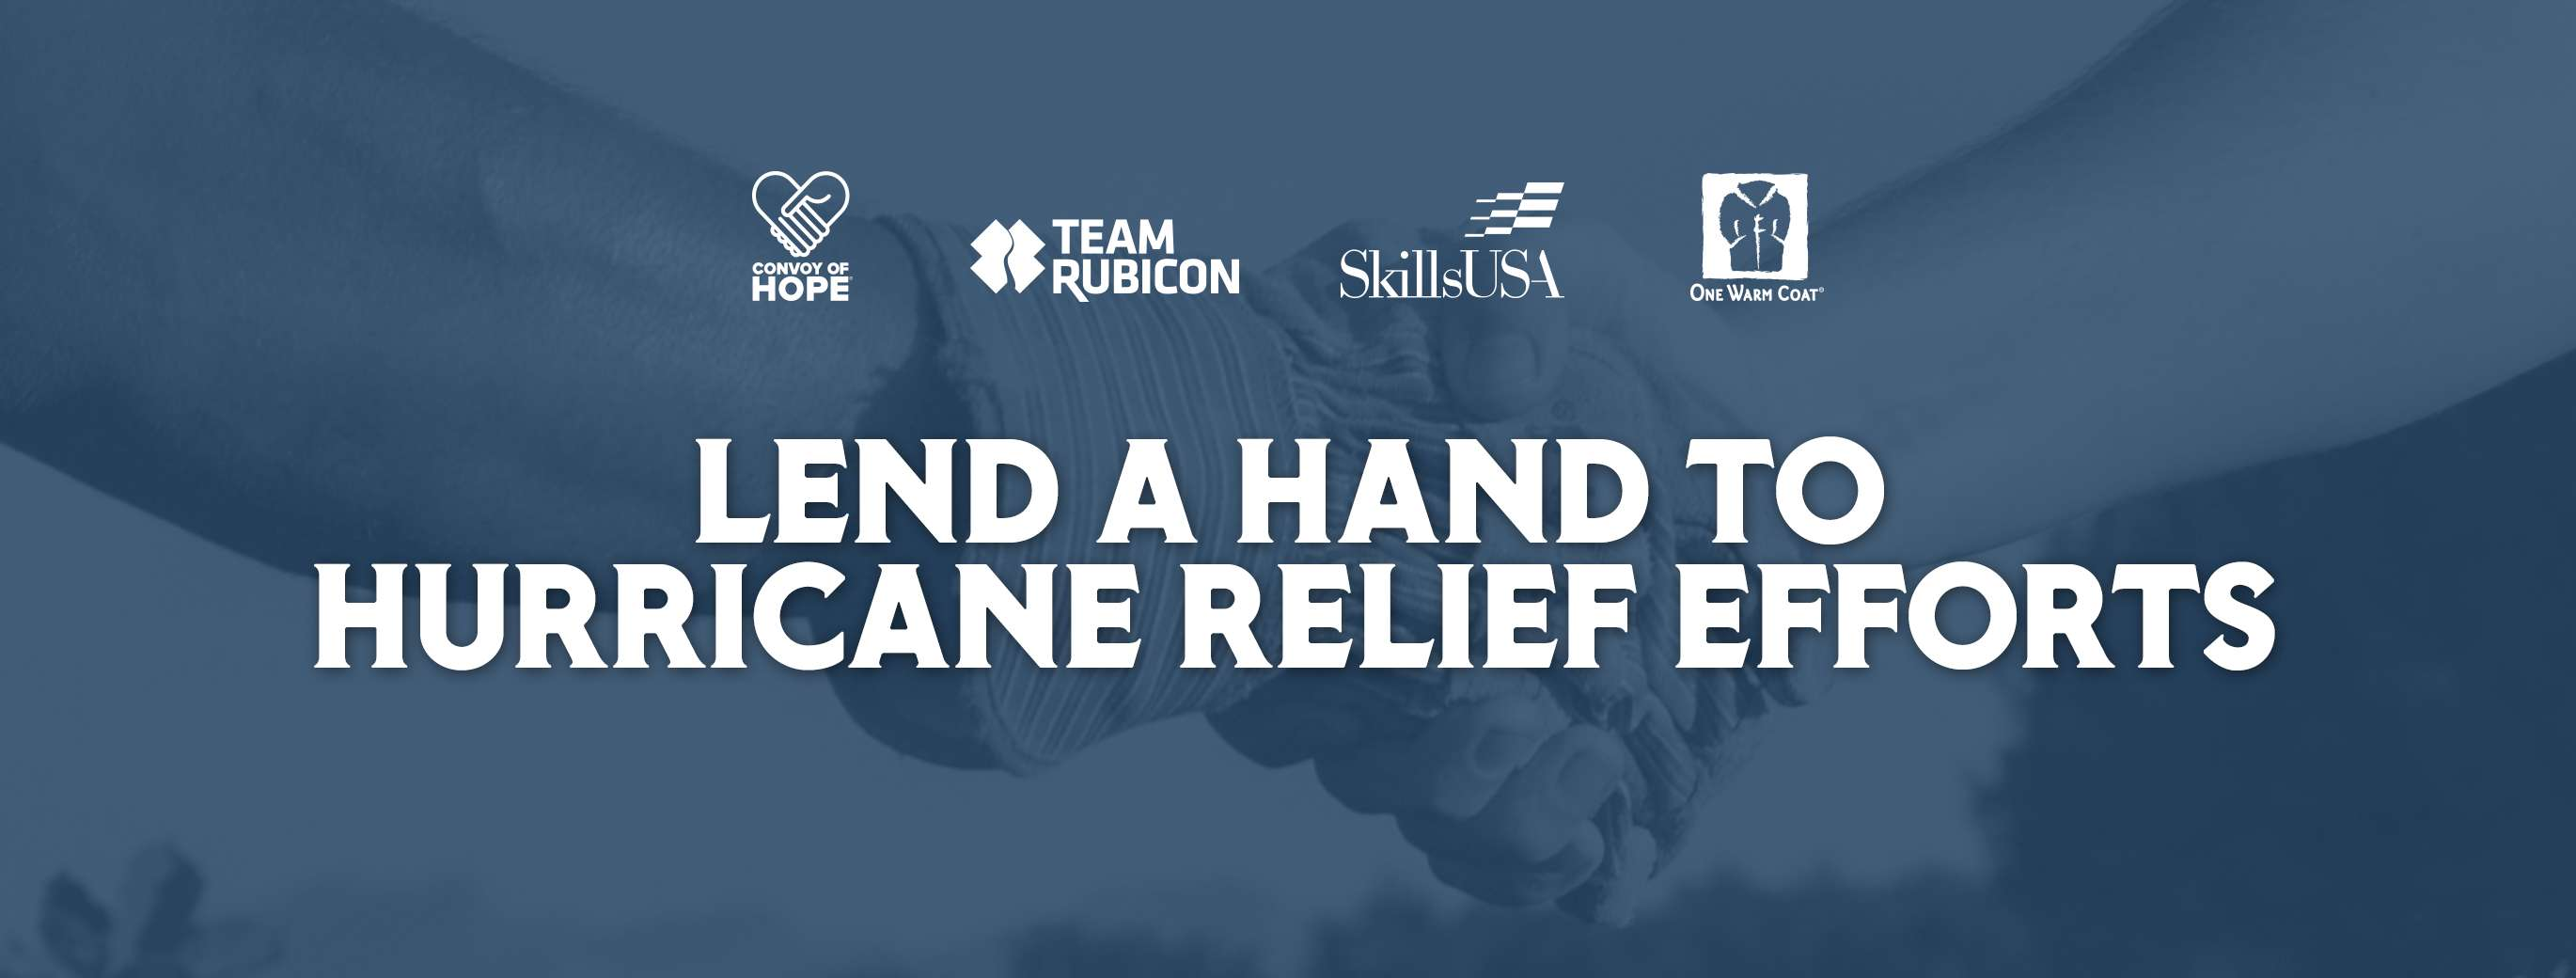 LEND A HAND TO HURRICANE RELIEF EFFORTS